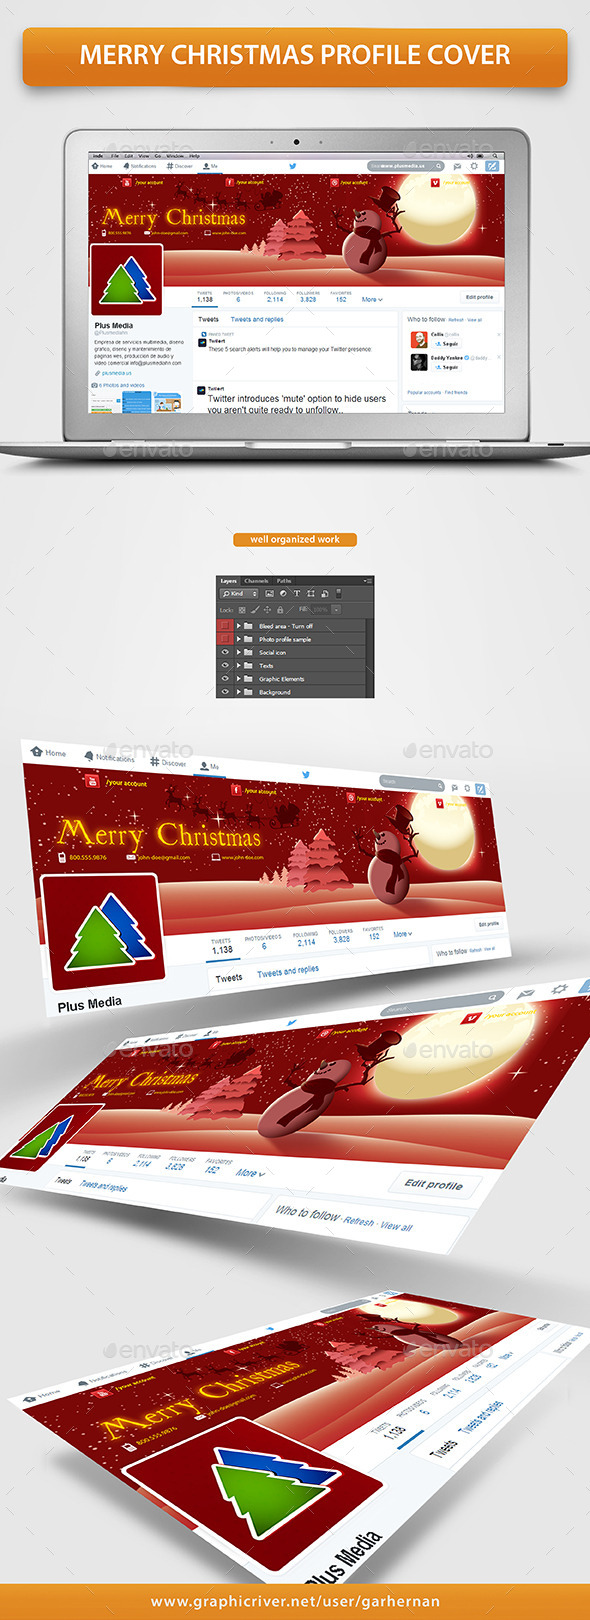 Merry Christmas Profile Cover - Twitter Social Media